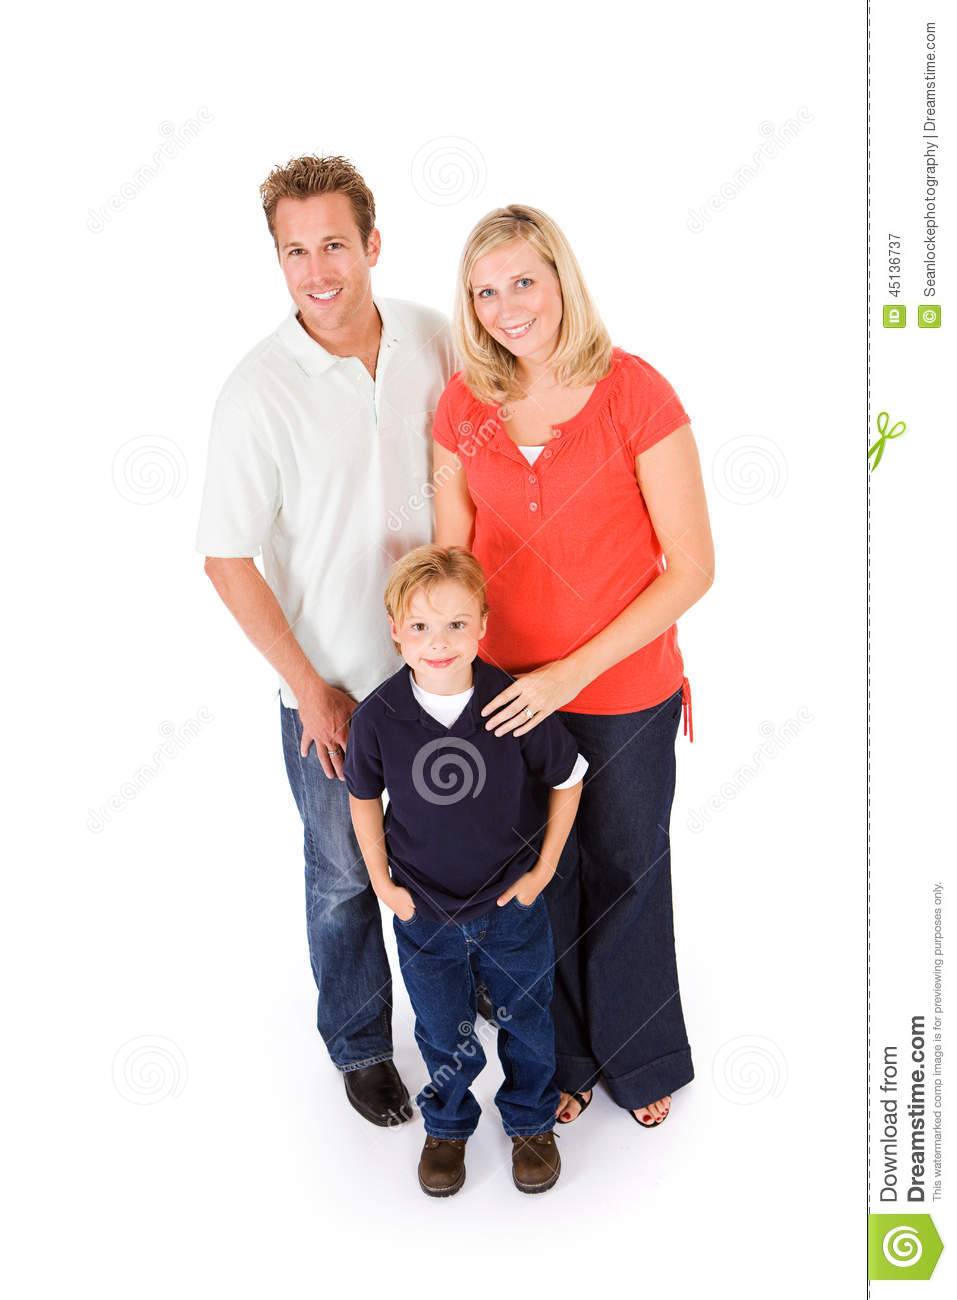 family two parents with one child stock photo image 45136737 american flag clip art vector american flag clip art animated